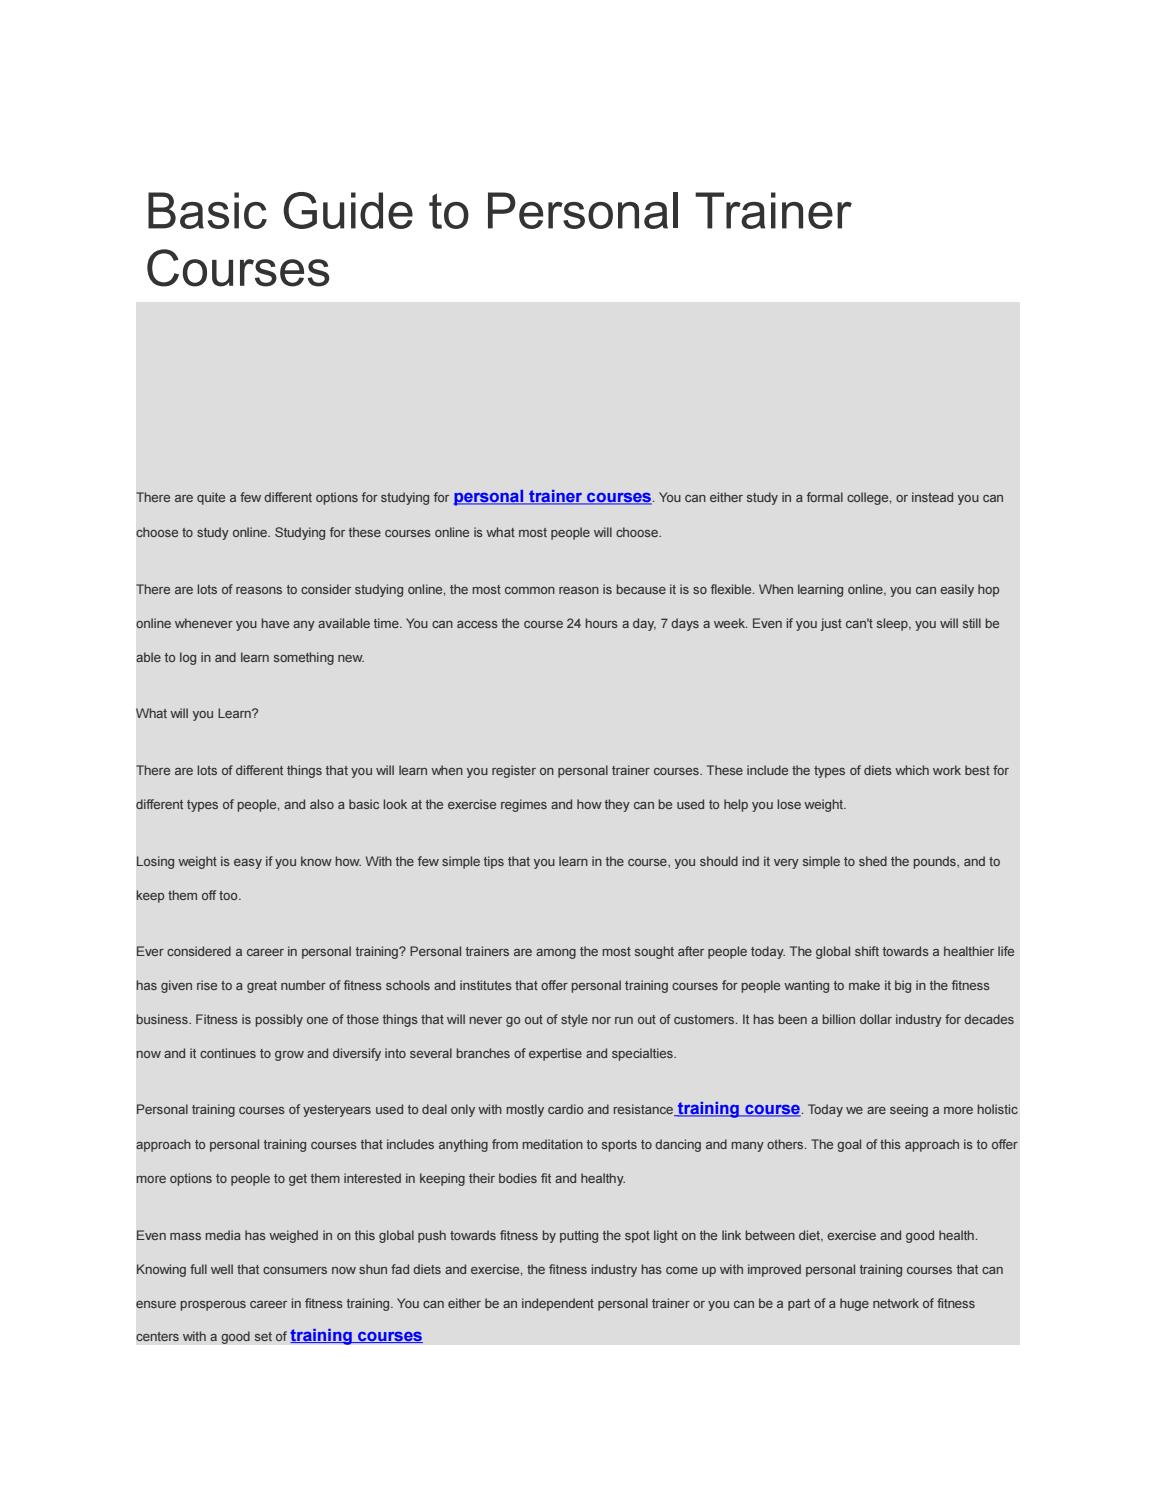 Basic Guide To Personal Trainer Courses By Buy Instgaram Followers